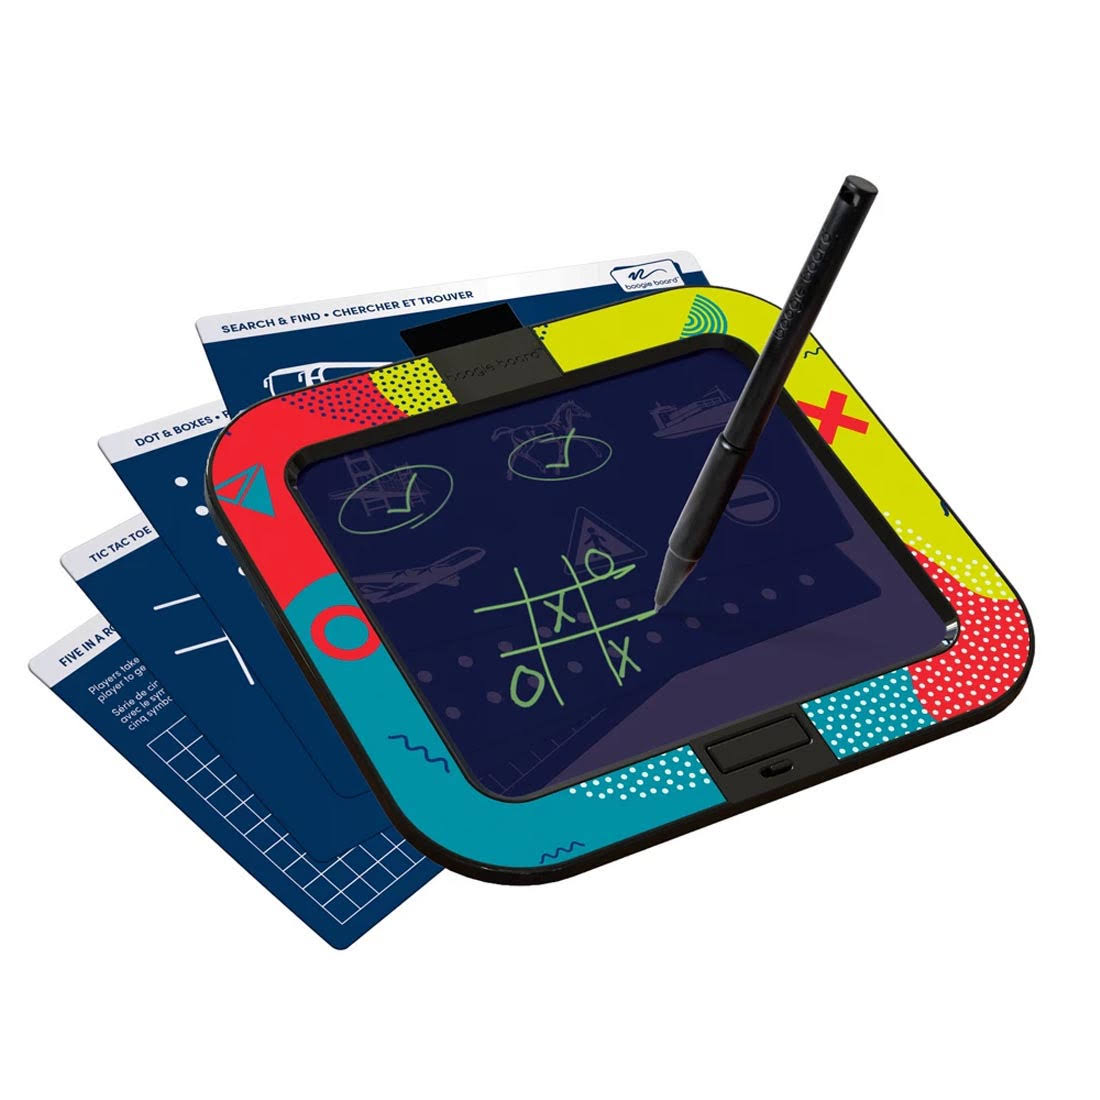 Kent Display Boogie Board Dash